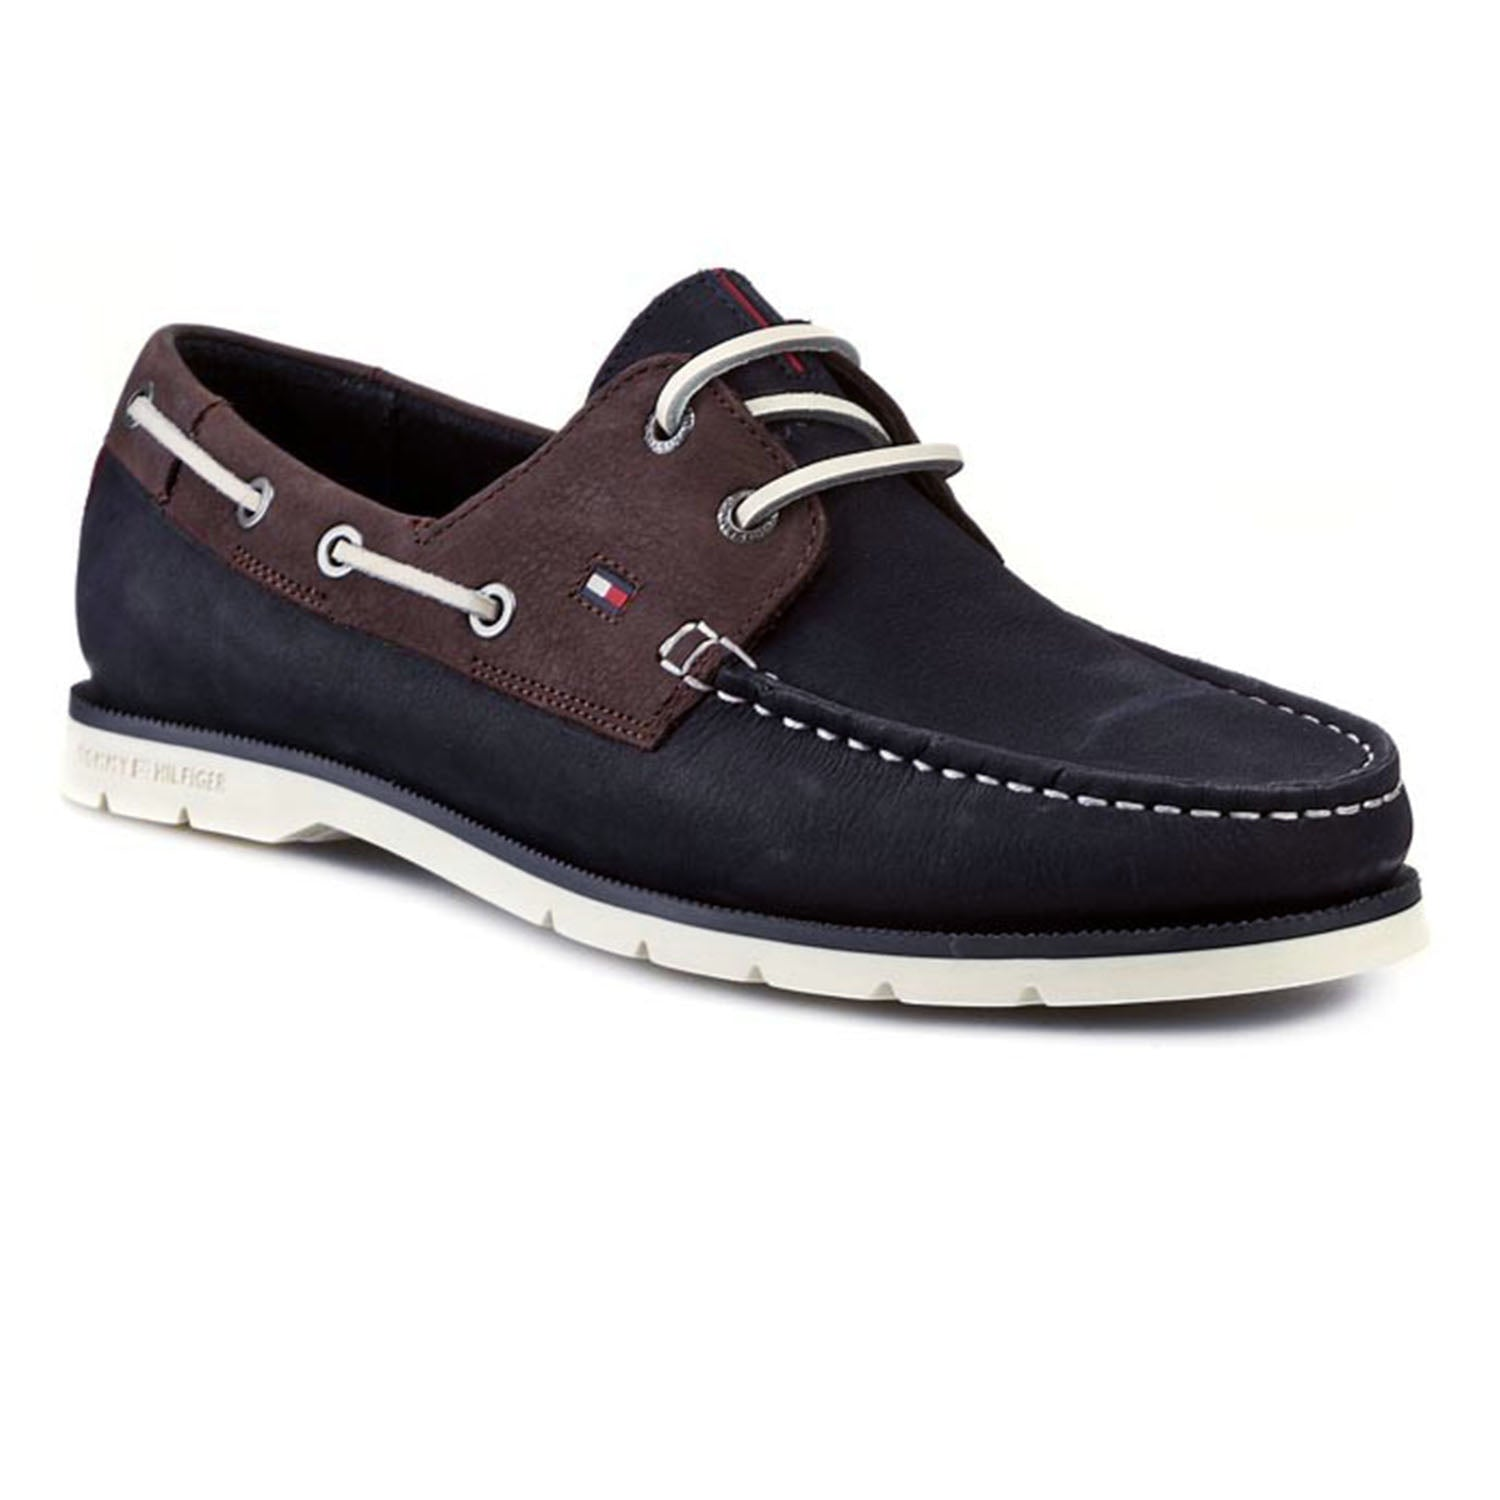 Tommy Hilfiger CAIN 3N Leather Boat Shoes